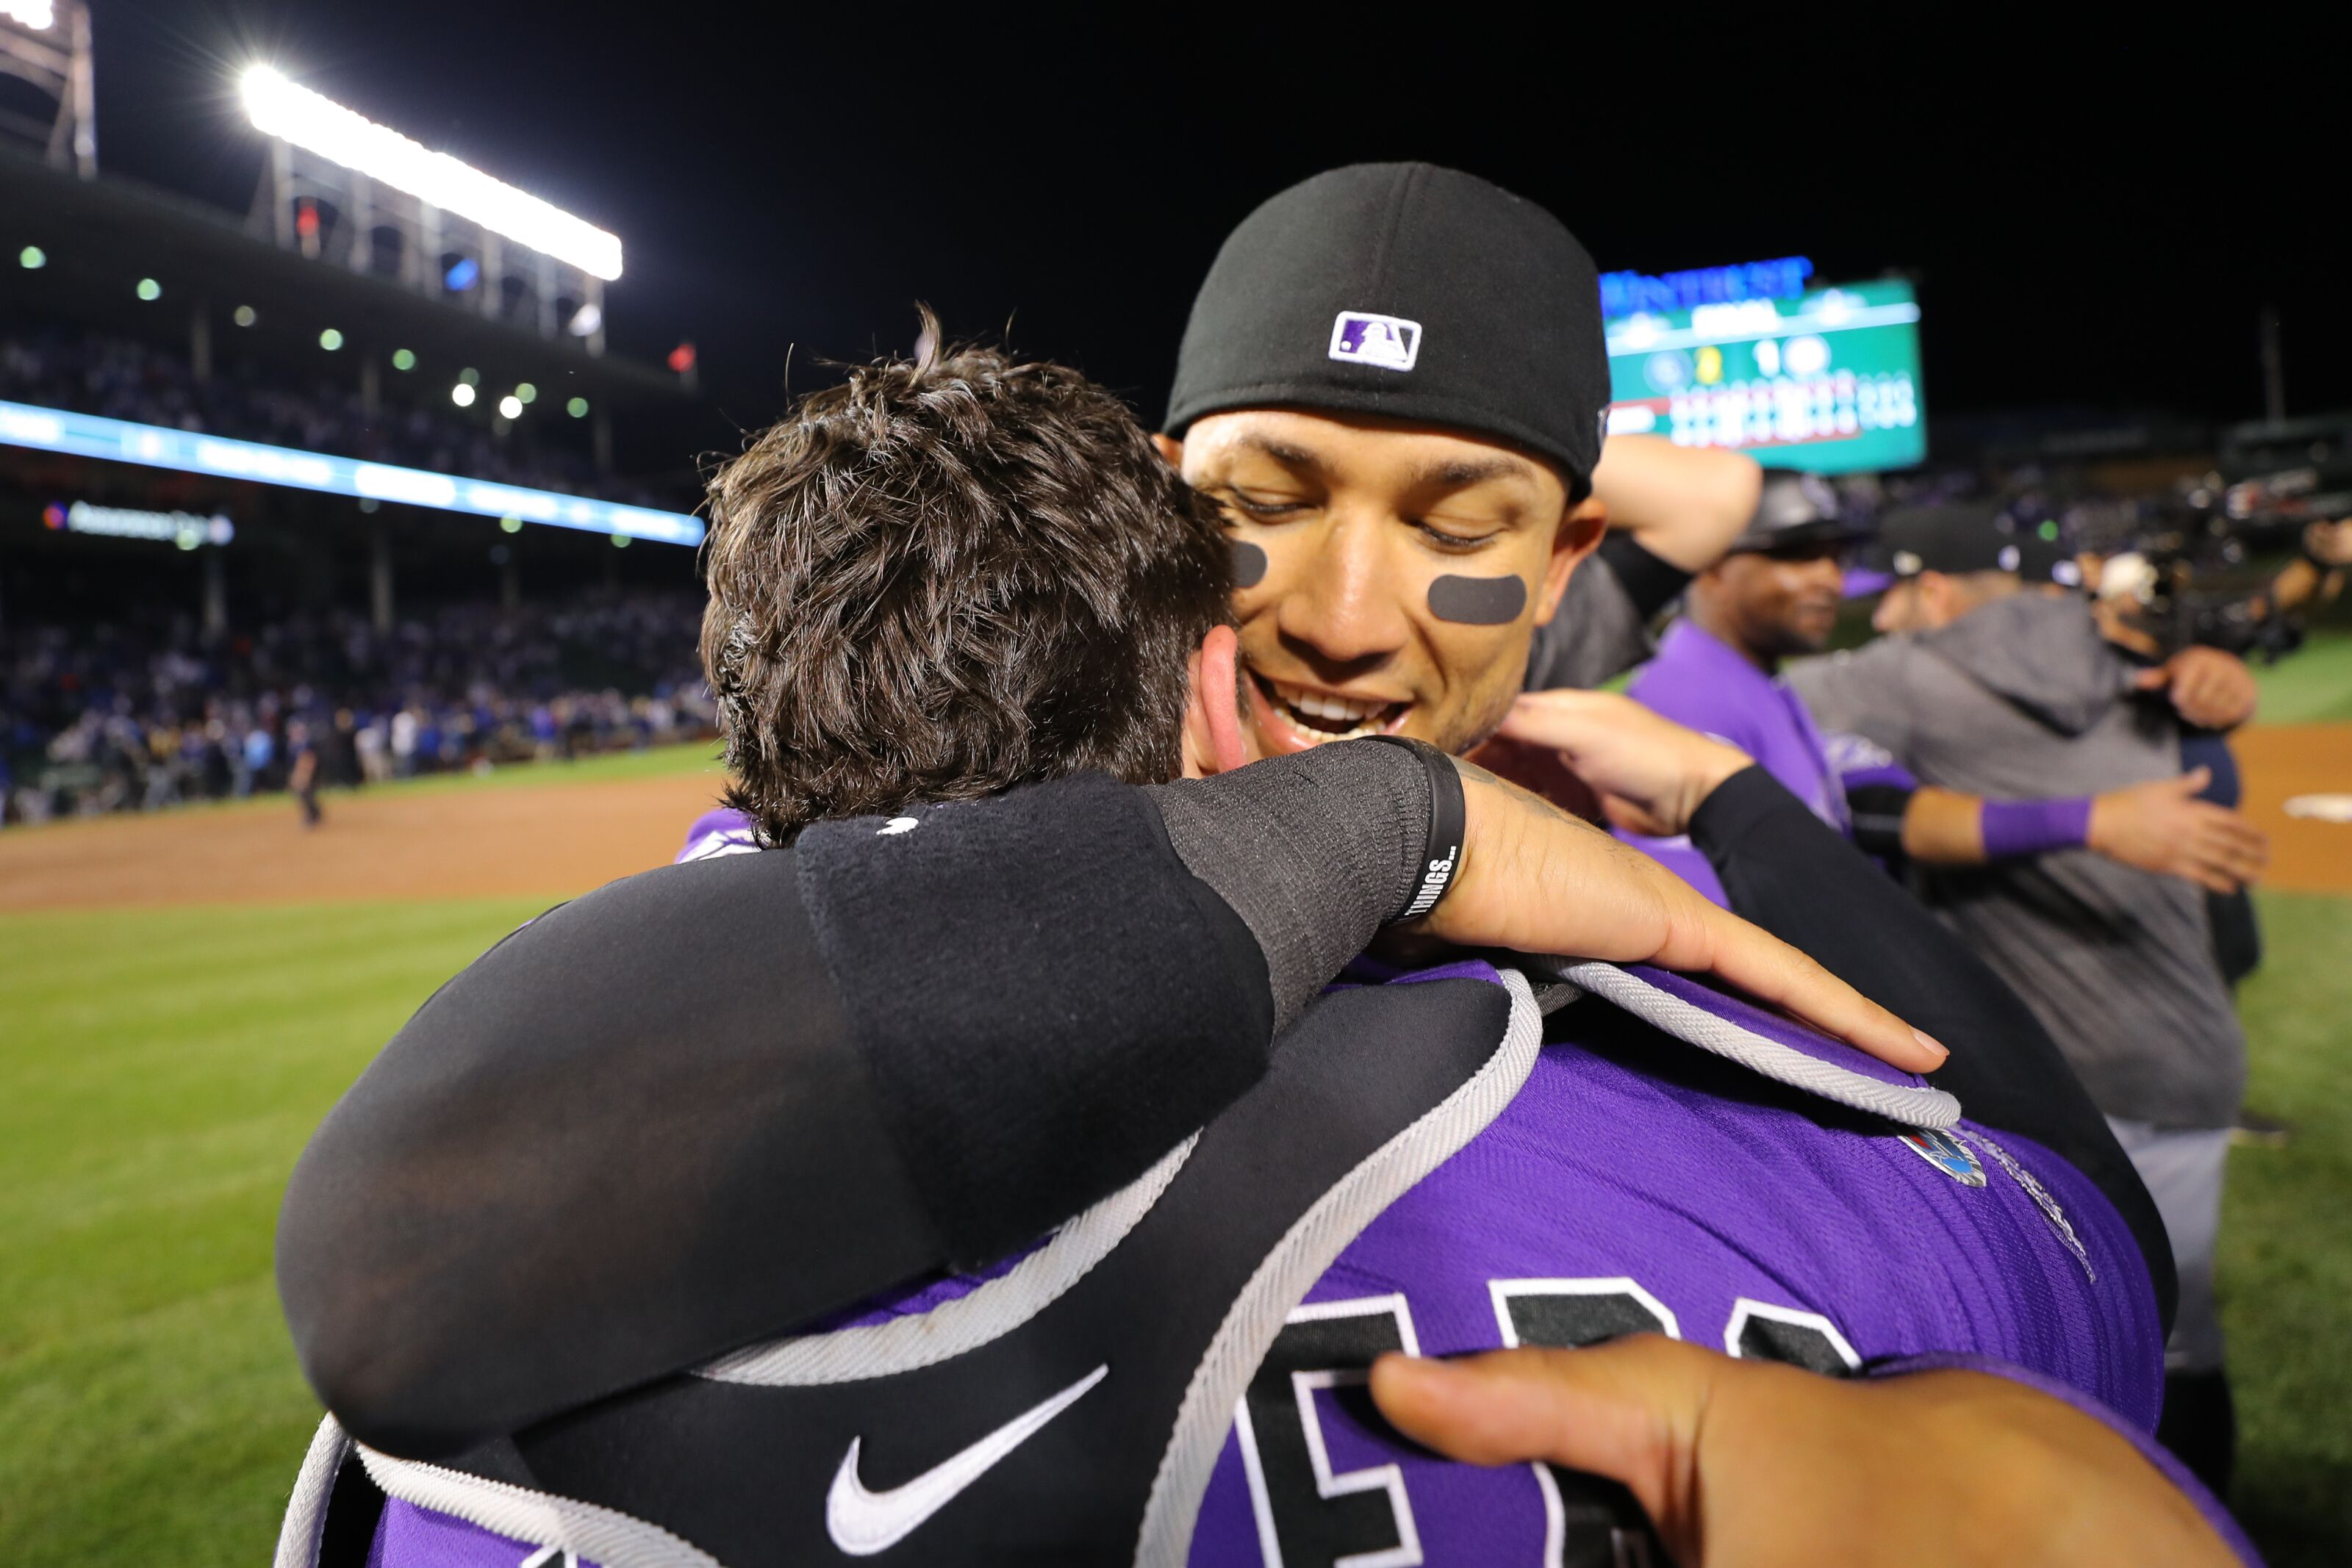 Colorado Rockies: 3 Christmas Wishes for the Holidays